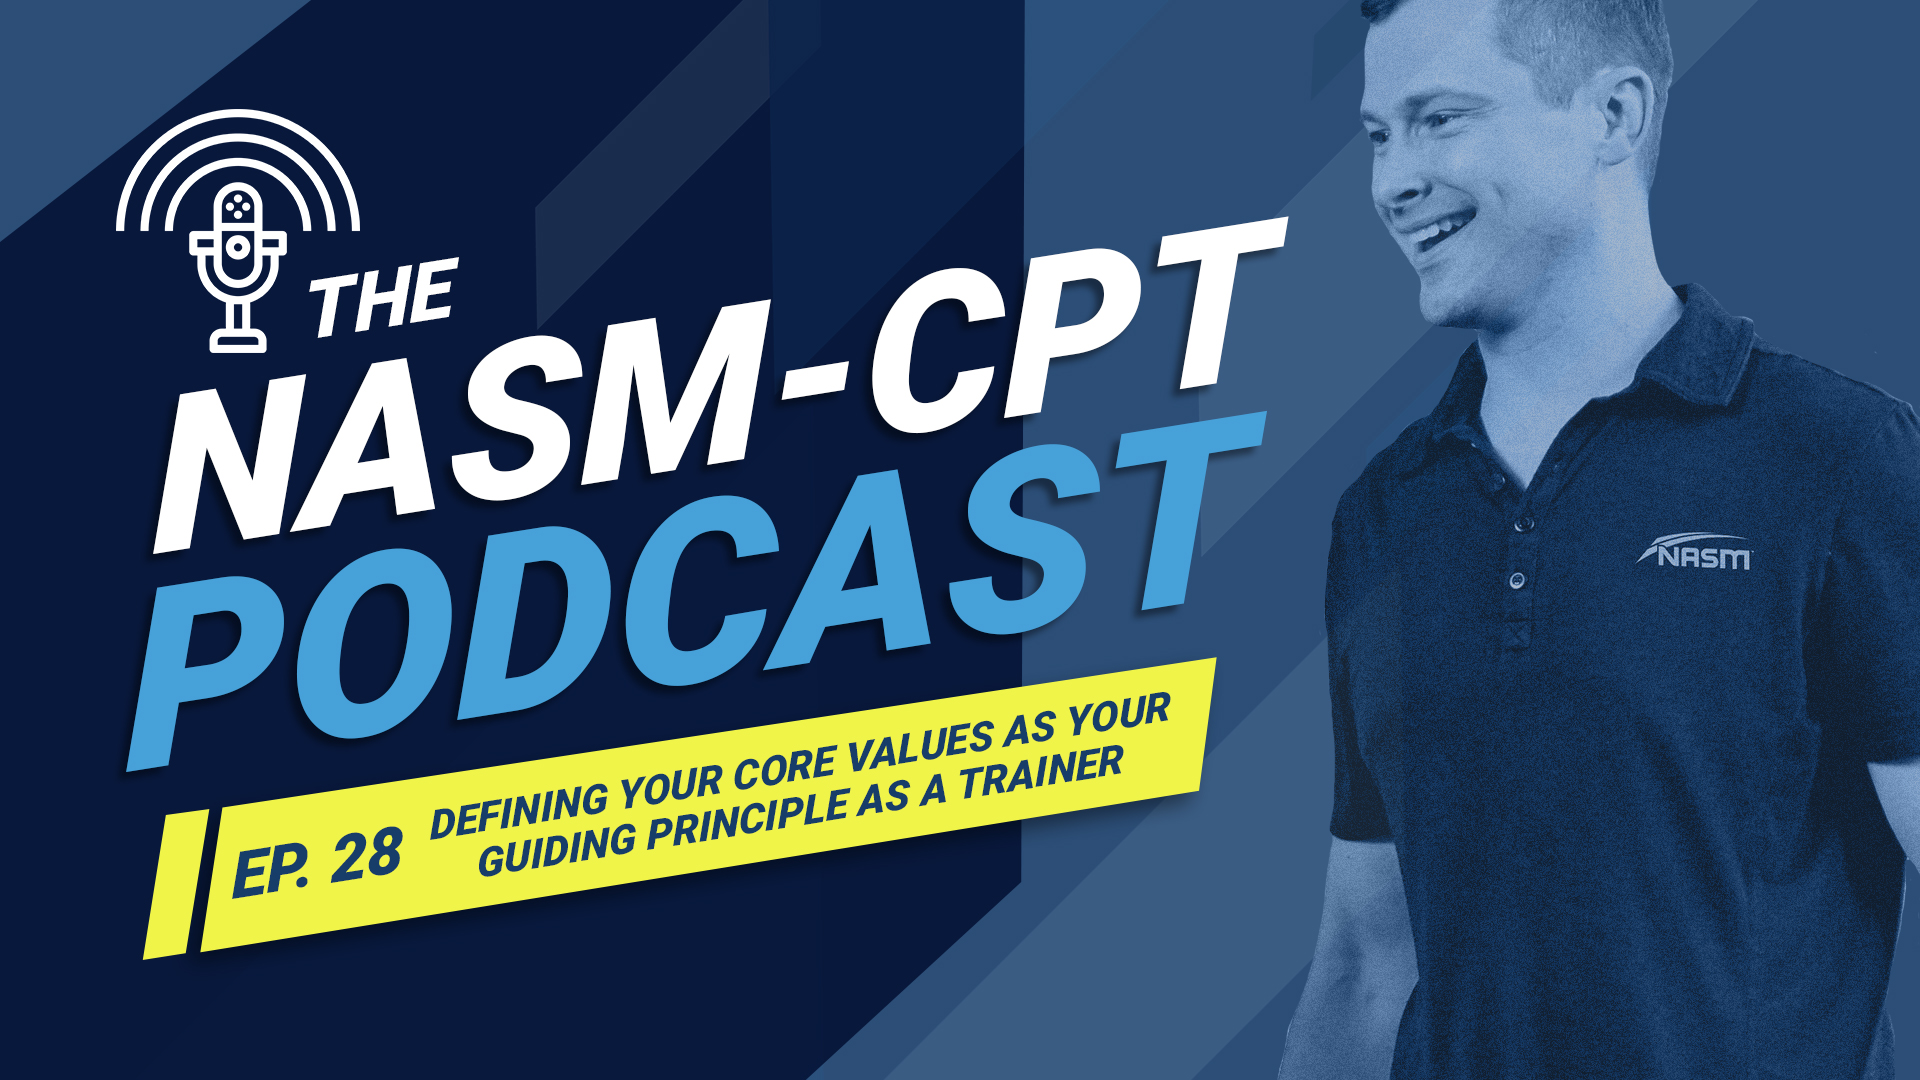 NASM-CPT Podcast Ep. 28